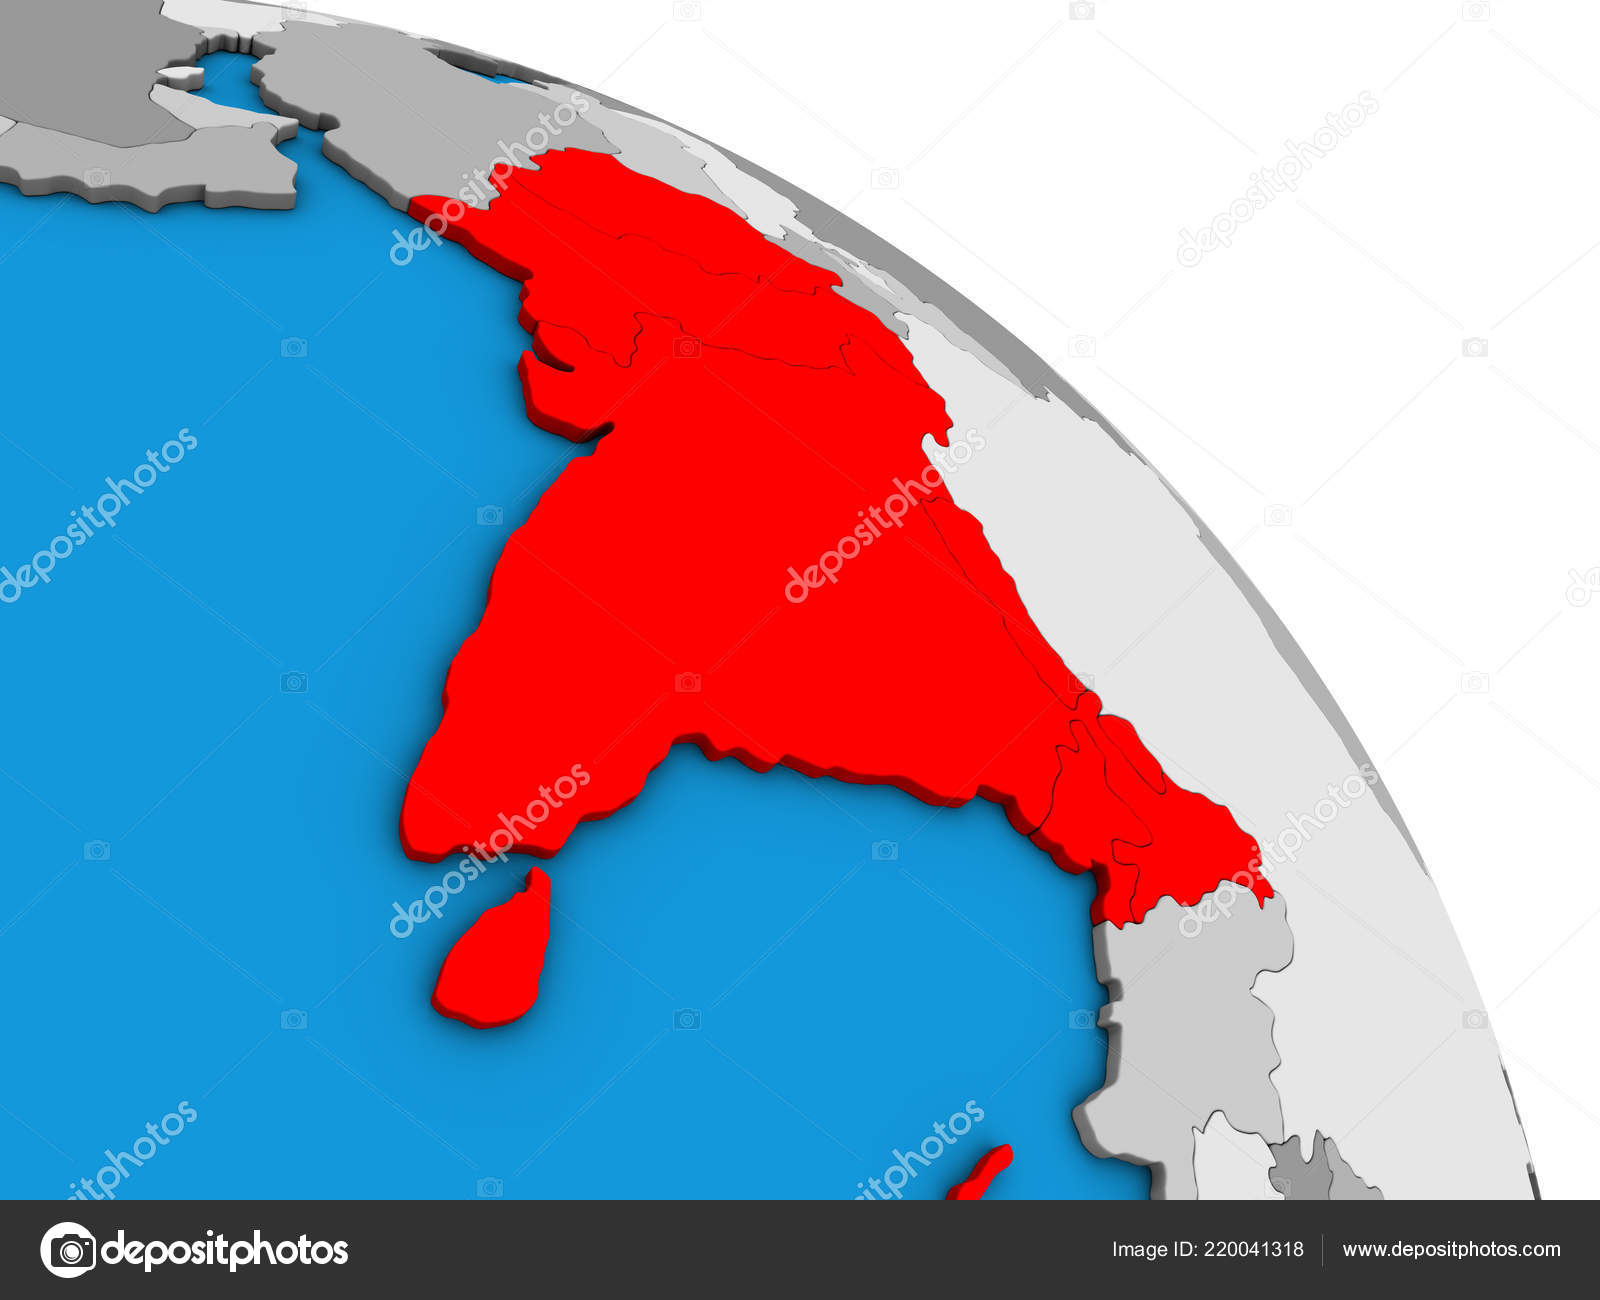 South Asia Simple Blue Political Globe Illustration — Stock ... on map of world globe, map of north america globe, map of new zealand globe, map of middle east globe,